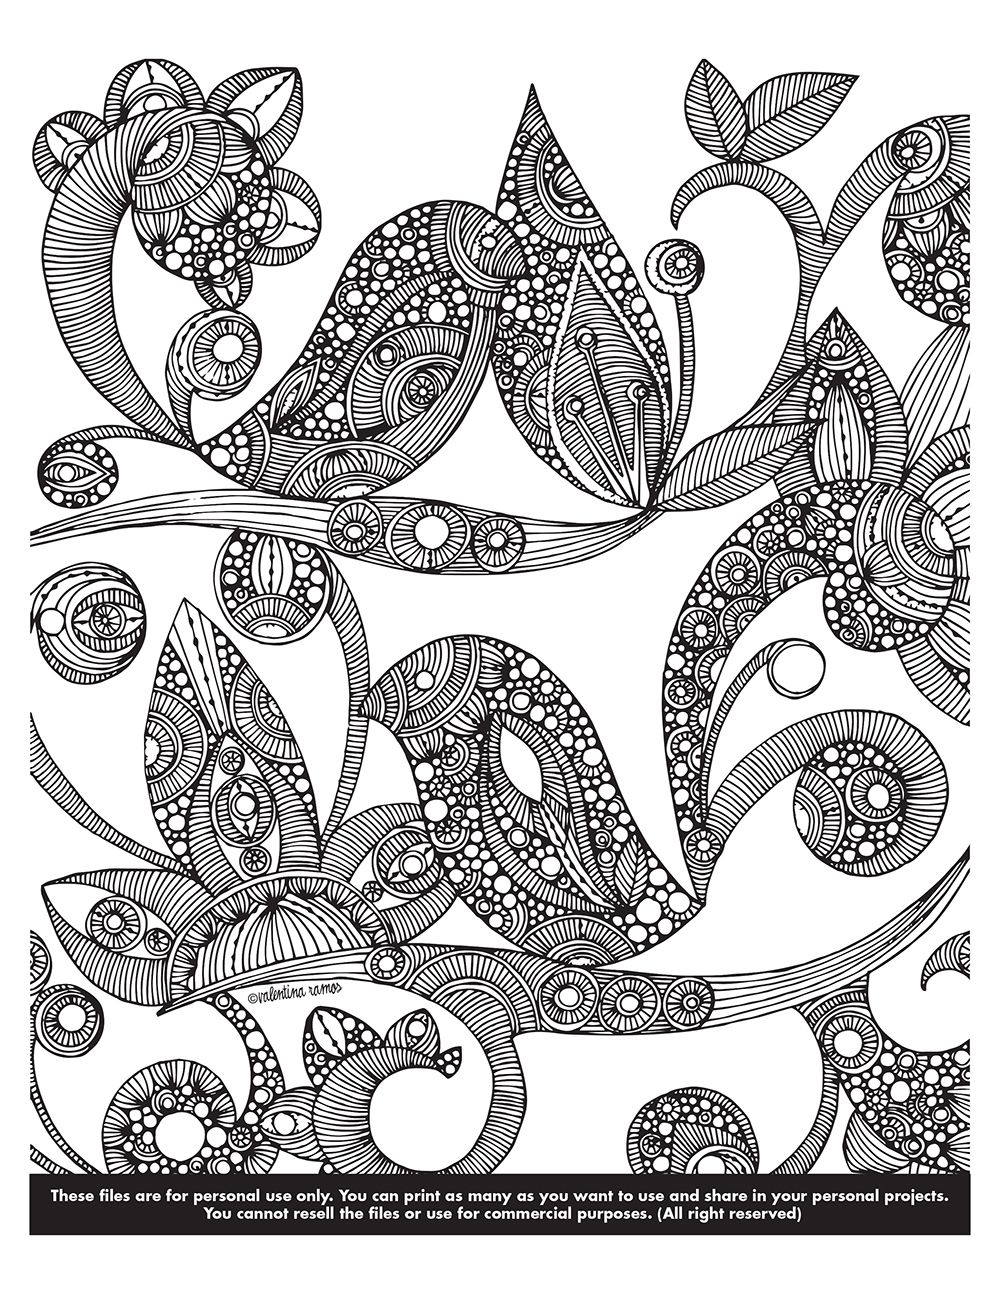 Happy Coloring Monday Click This Link To Download Your Page Valentinadesign Images Printables Birds 03 04 VHpdf Enjoy It